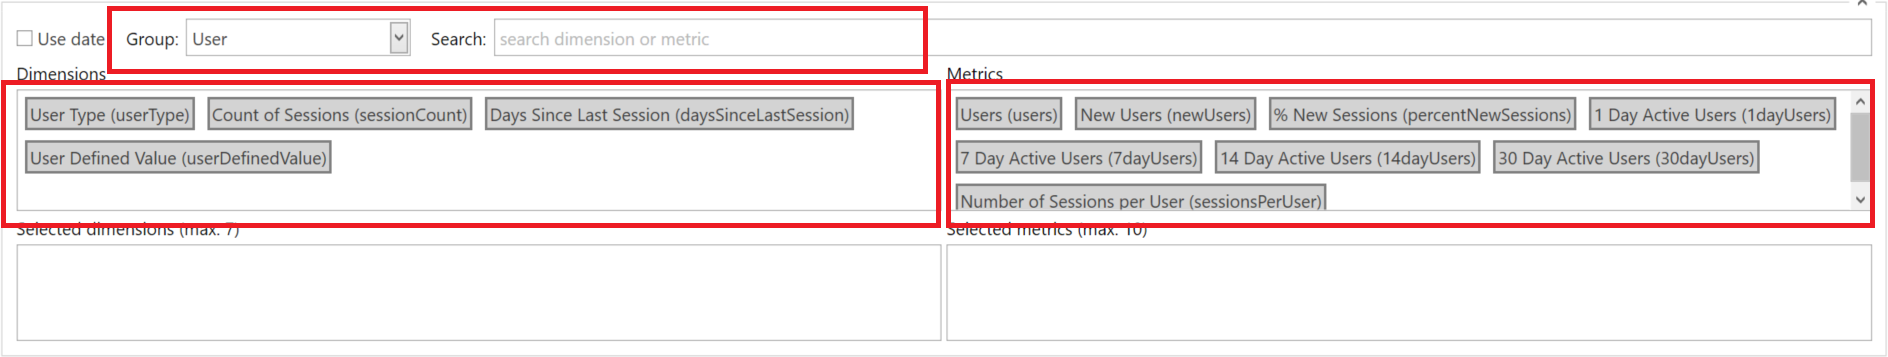 Google Analytics: Select Dimensions and Metrics